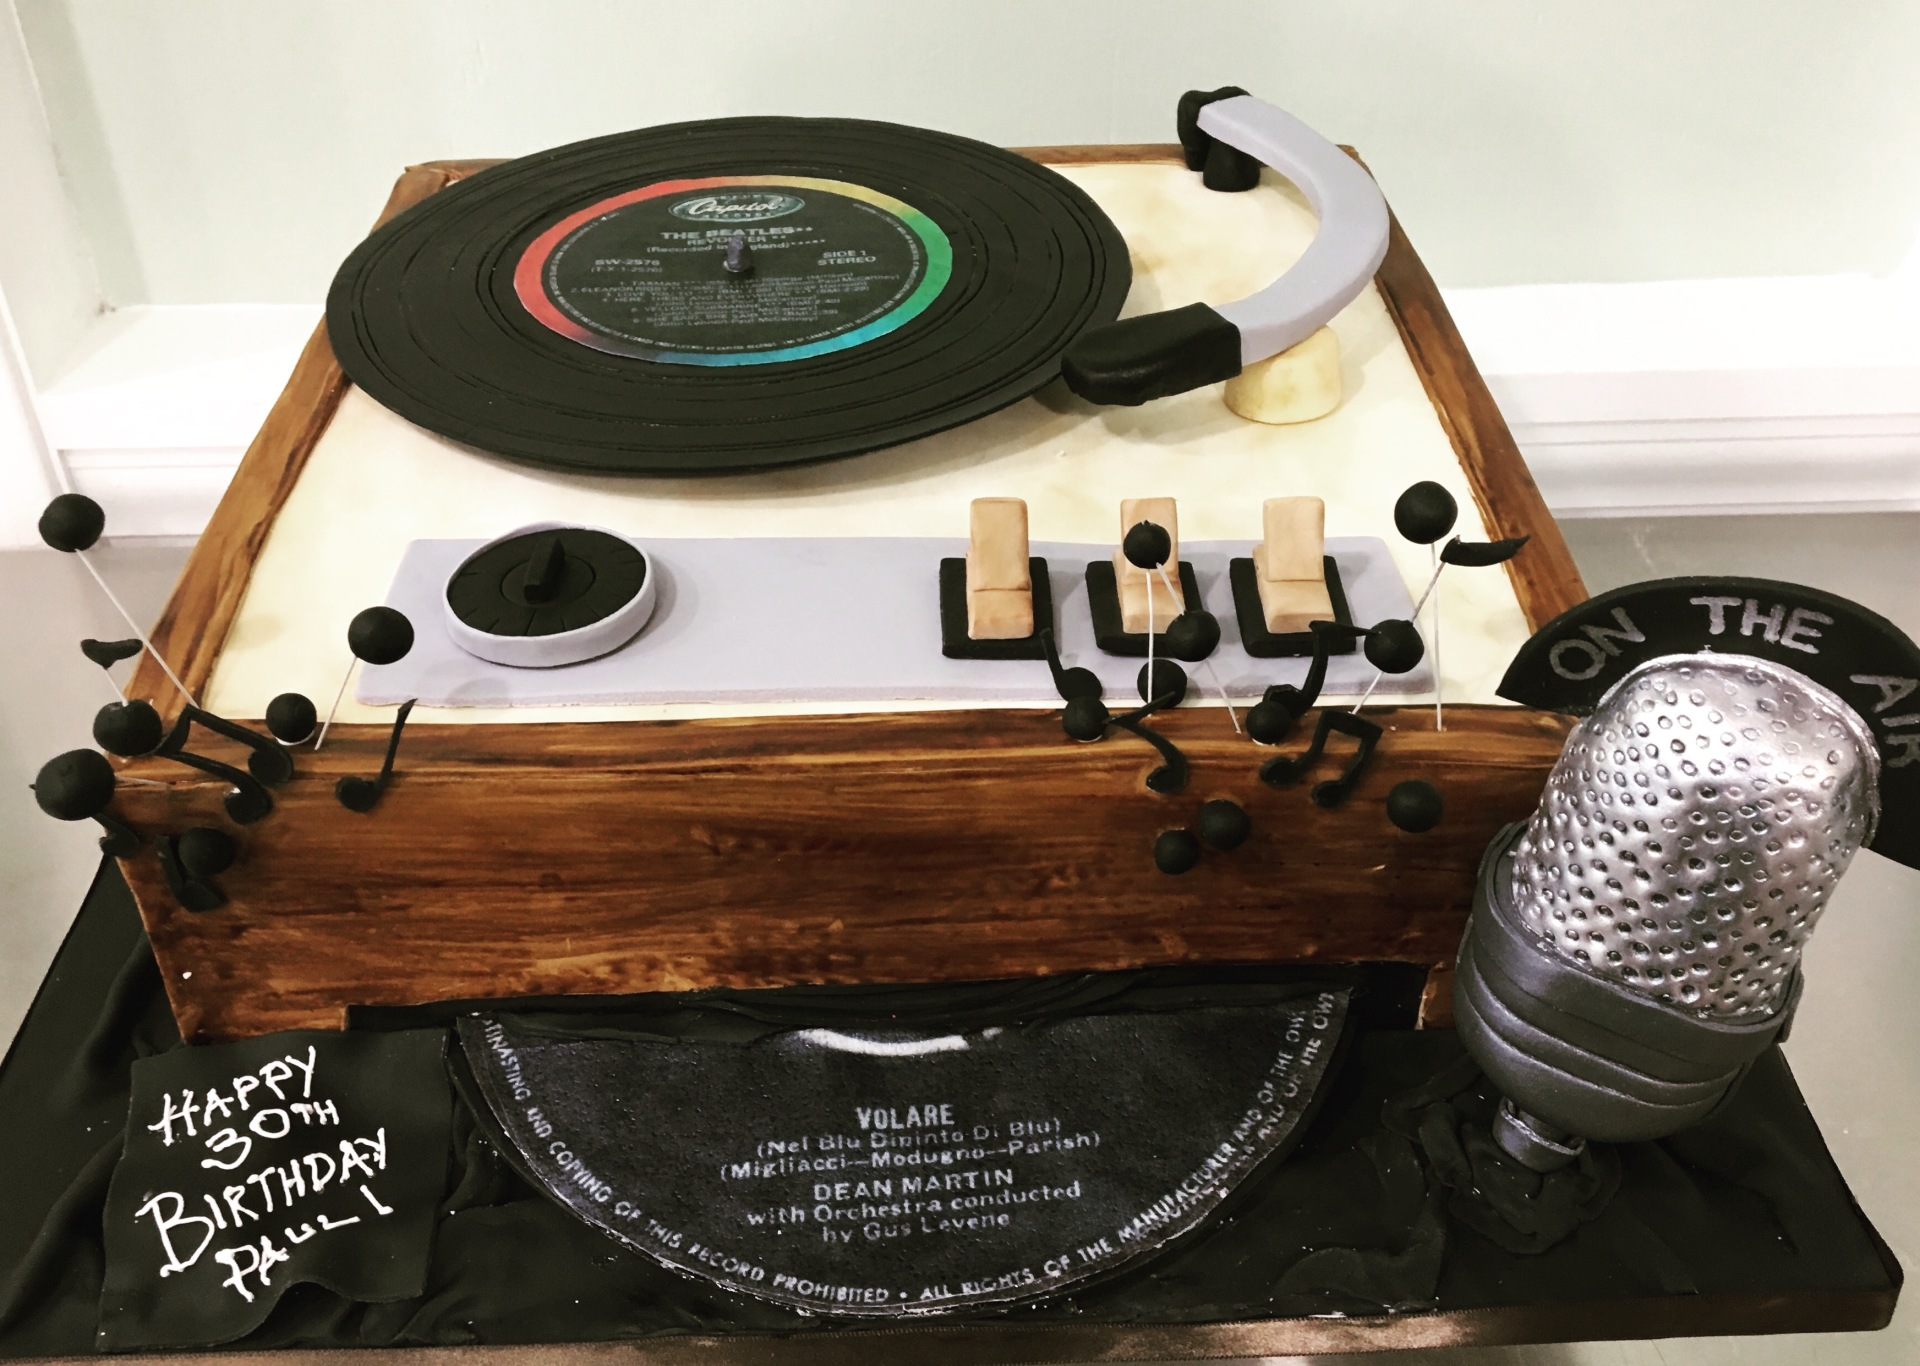 custom cakes nj vintage record player vinyl cake